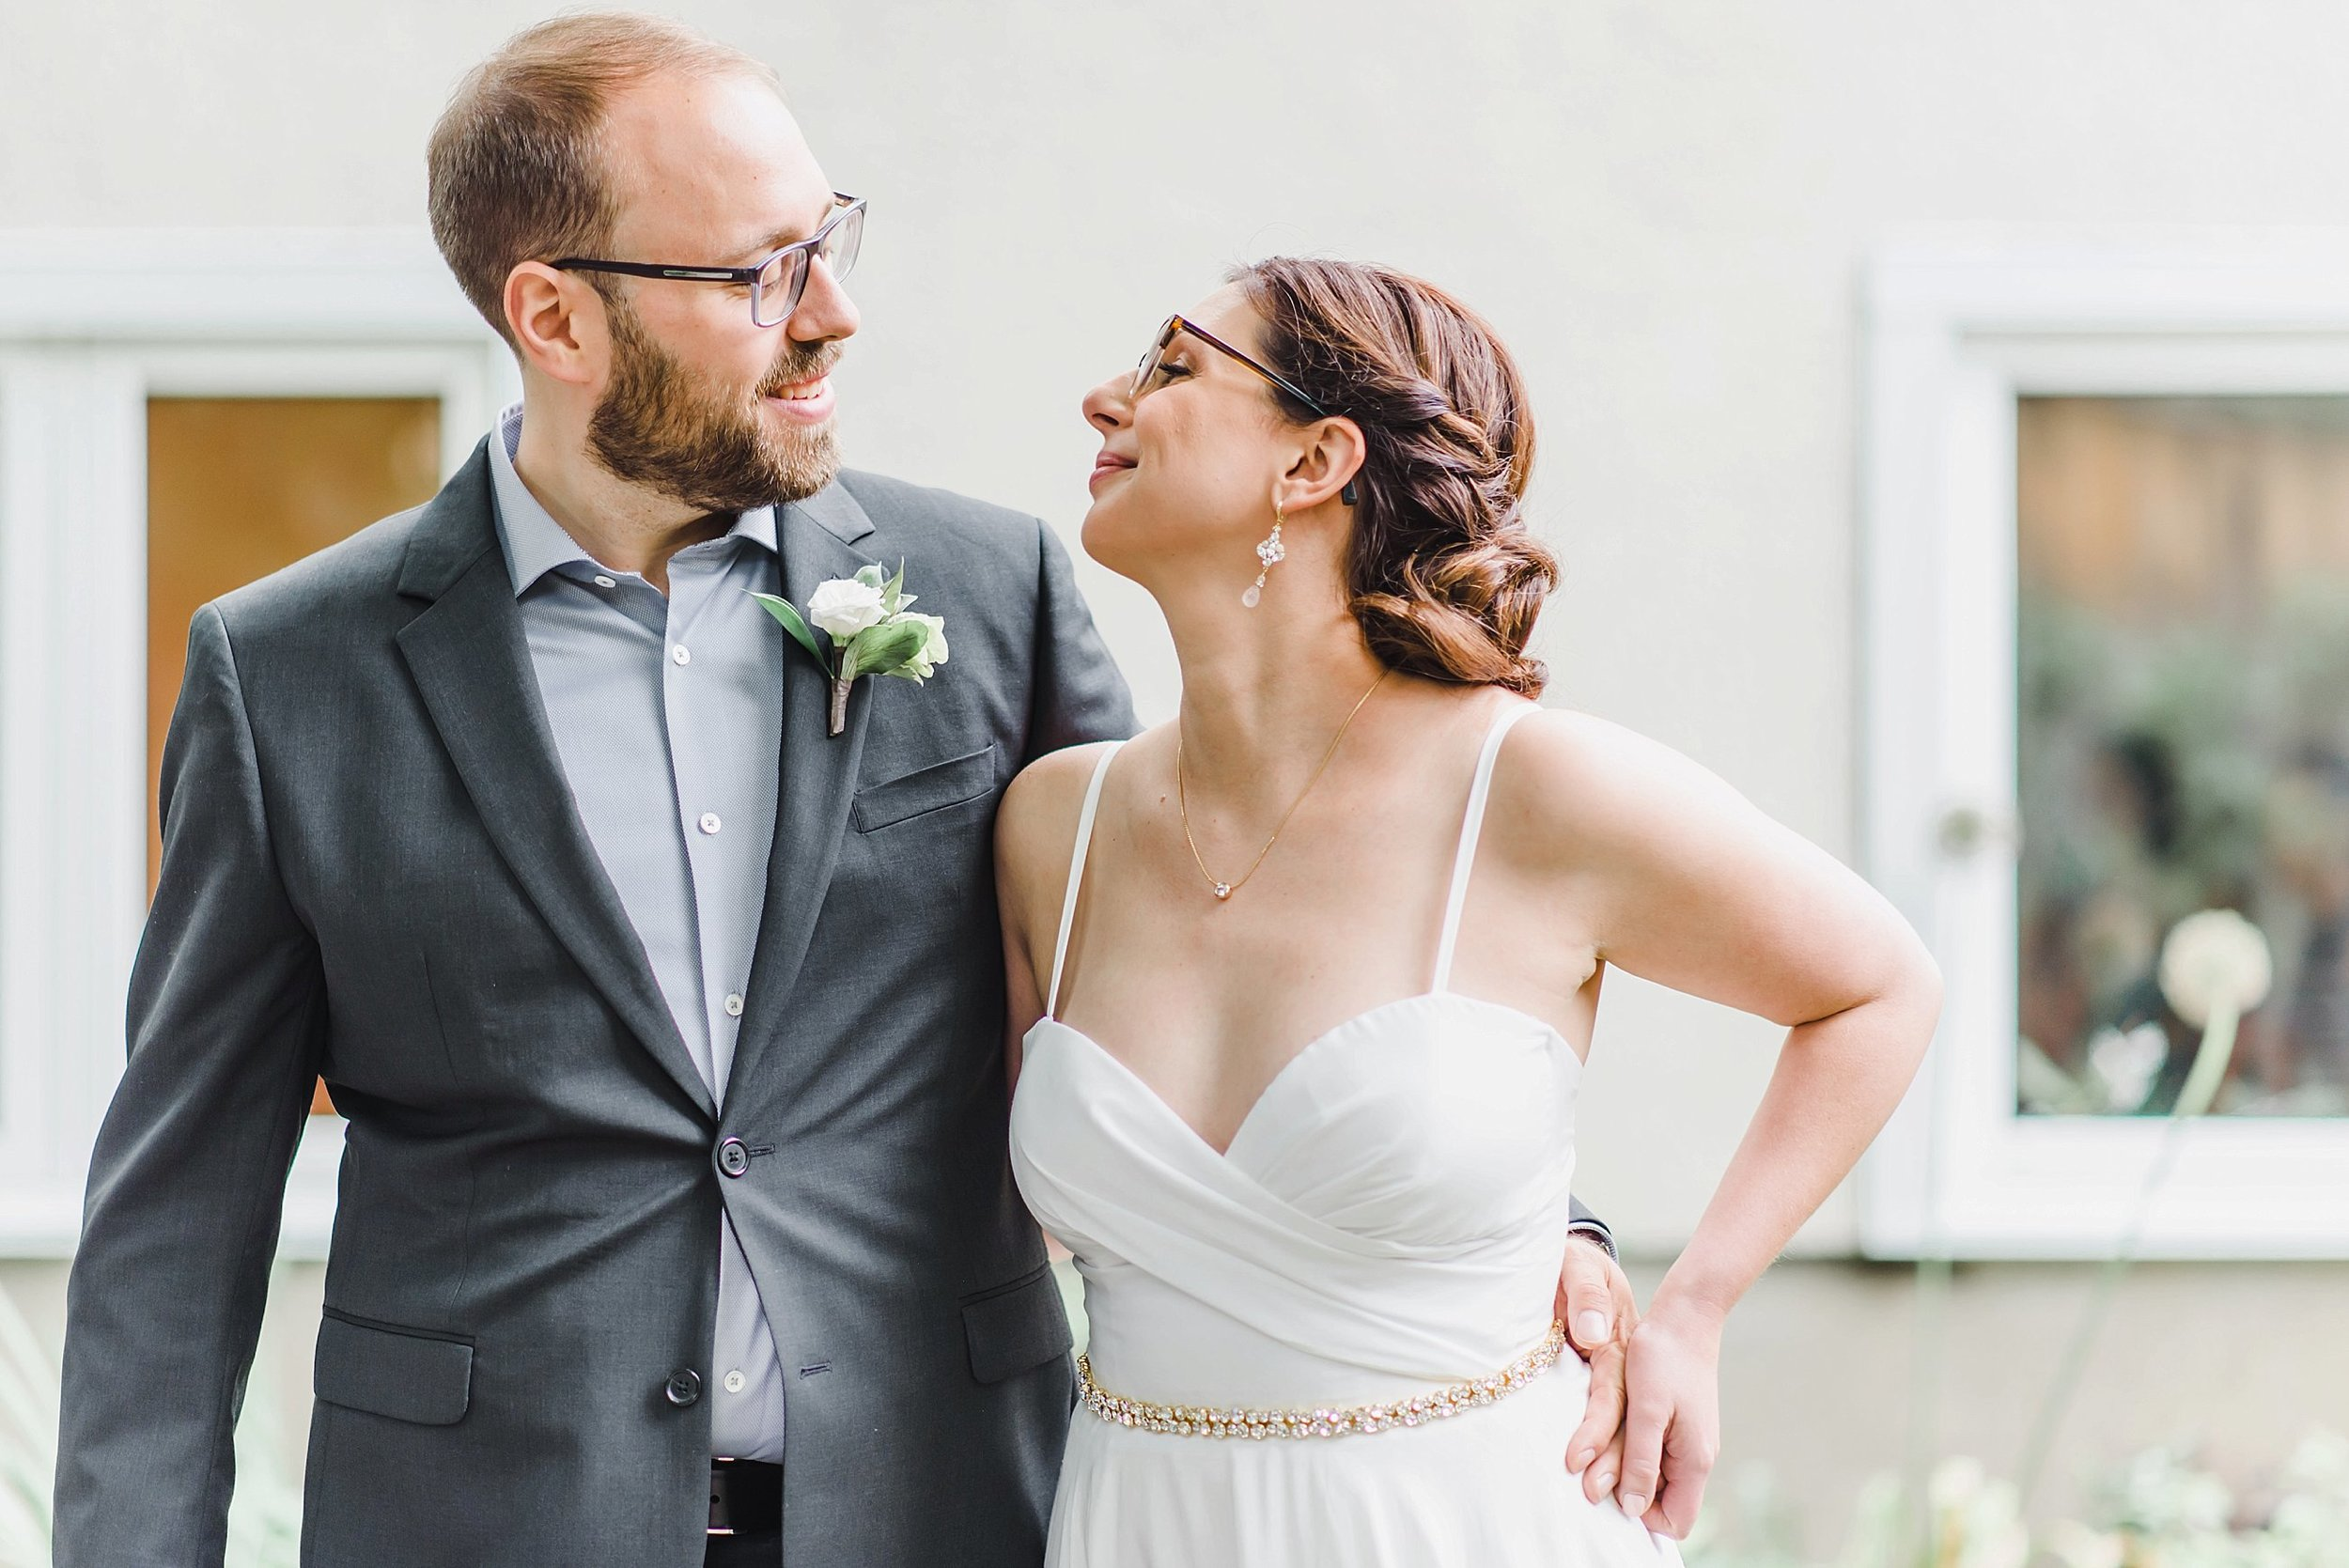 light airy indie fine art ottawa wedding photographer | Ali and Batoul Photography_1698.jpg